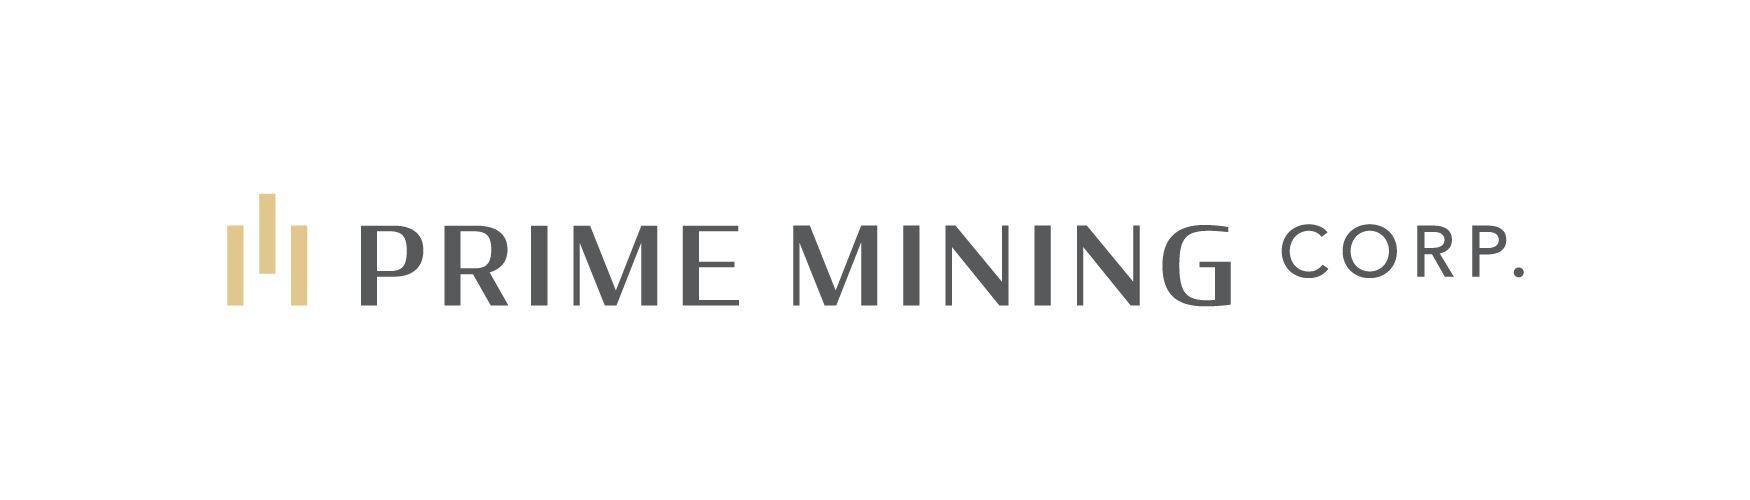 Prime Mining Completes Surface and Access Rights Agreement for Los Reyes